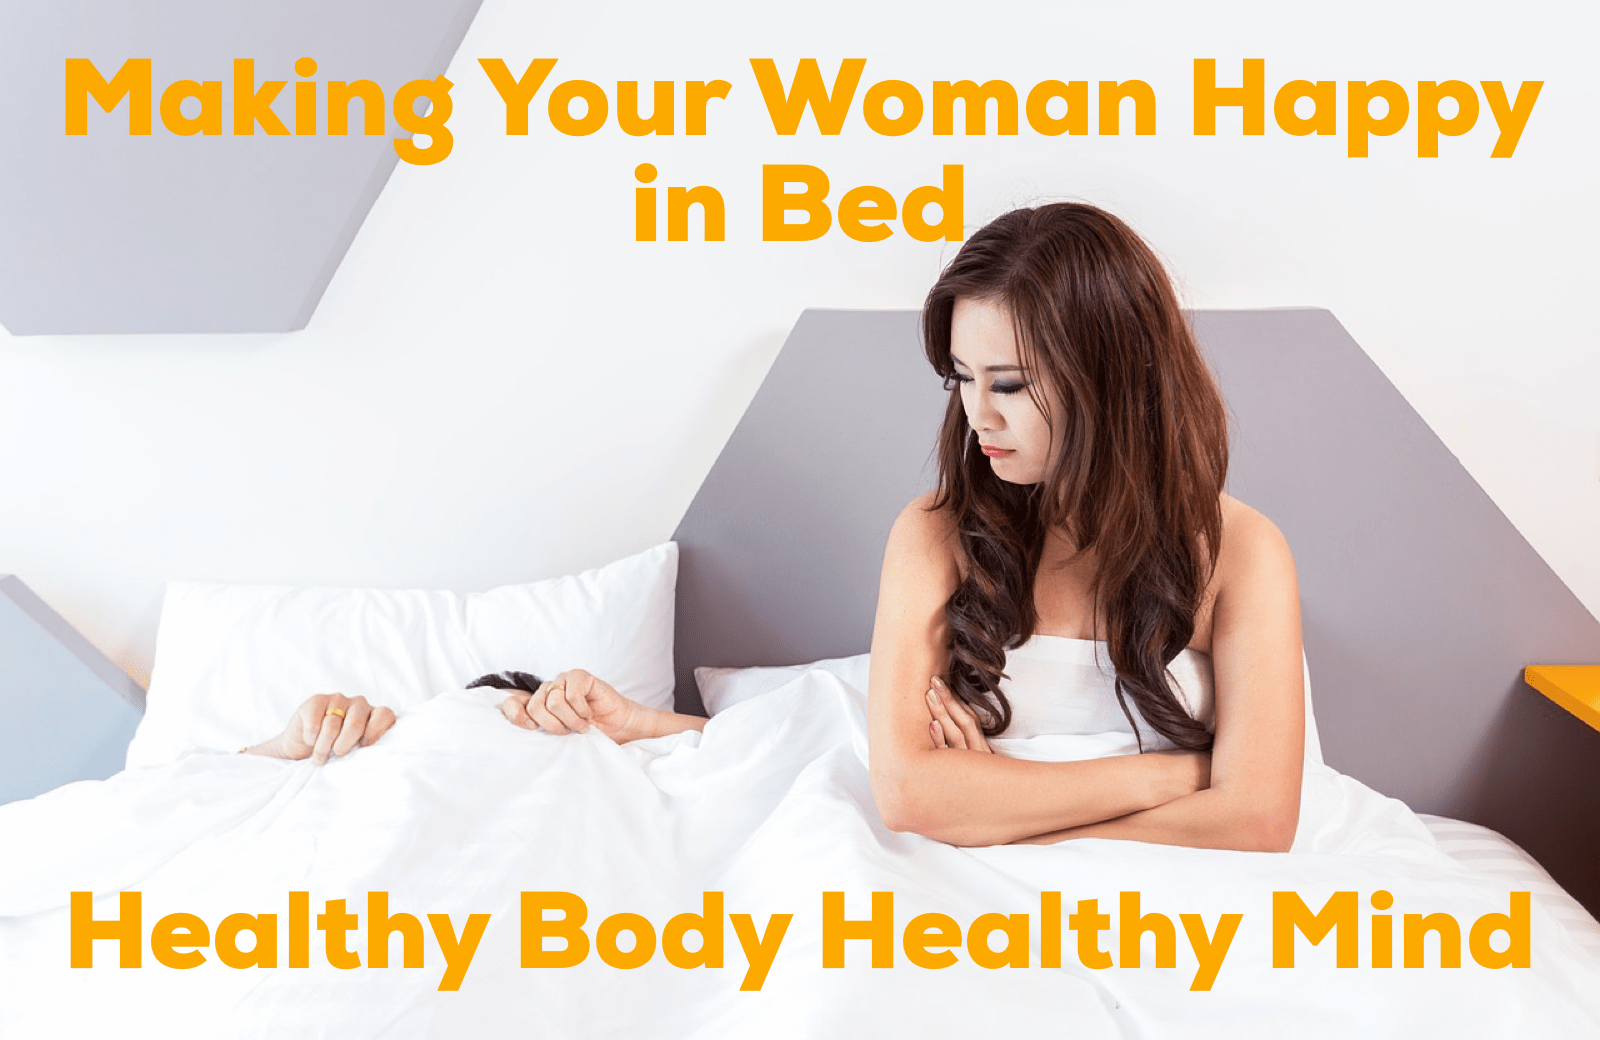 Make your woman happy in bed